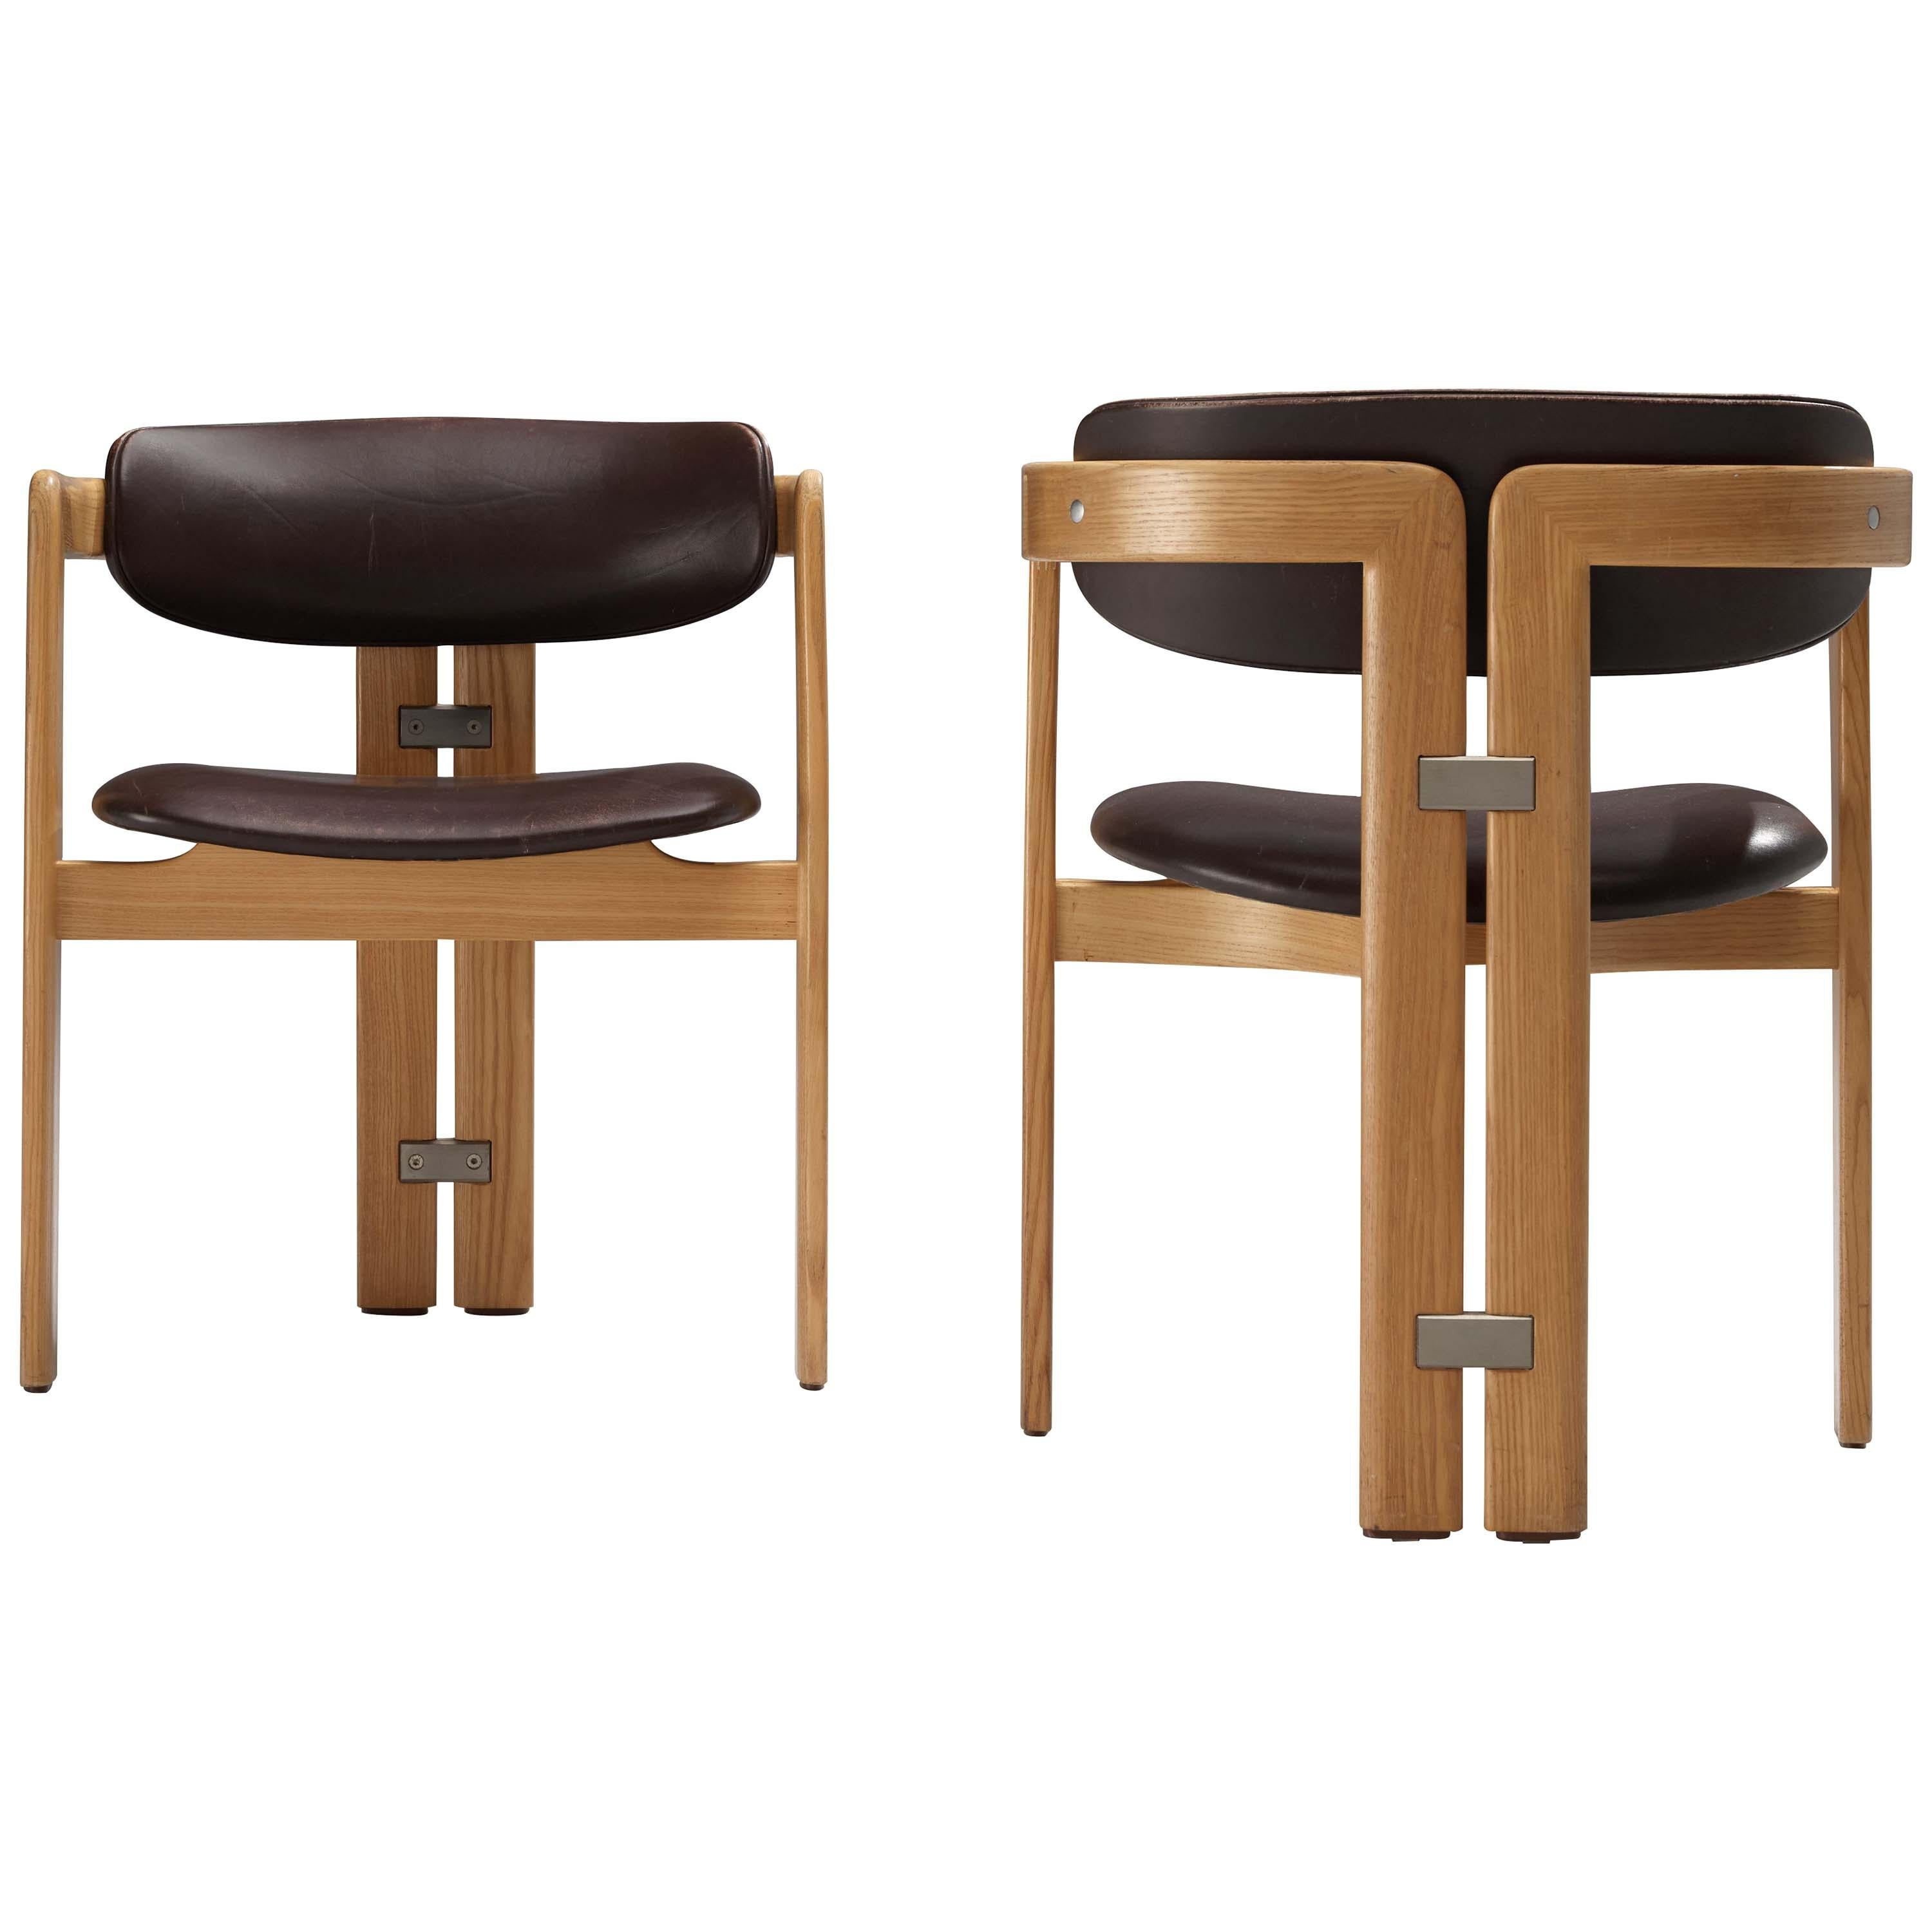 Augusto Savini 'Pamplona' Dining Chairs in Brown Leather